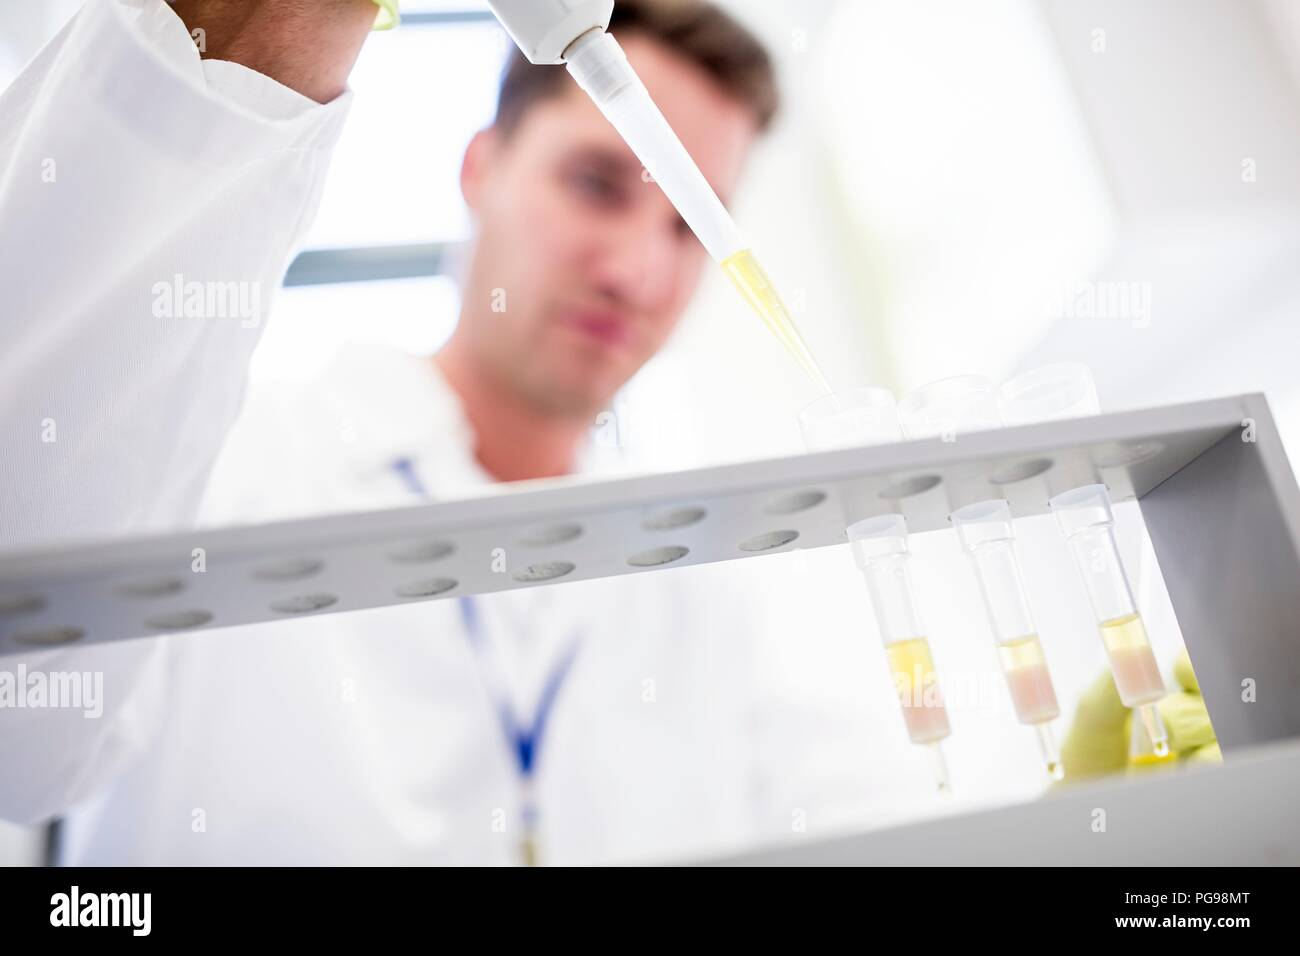 Technician pipetting samples into cartridges for solid phase extraction (SPE). SPE is used to separate biological compounds from a mixture for further analysis. - Stock Image